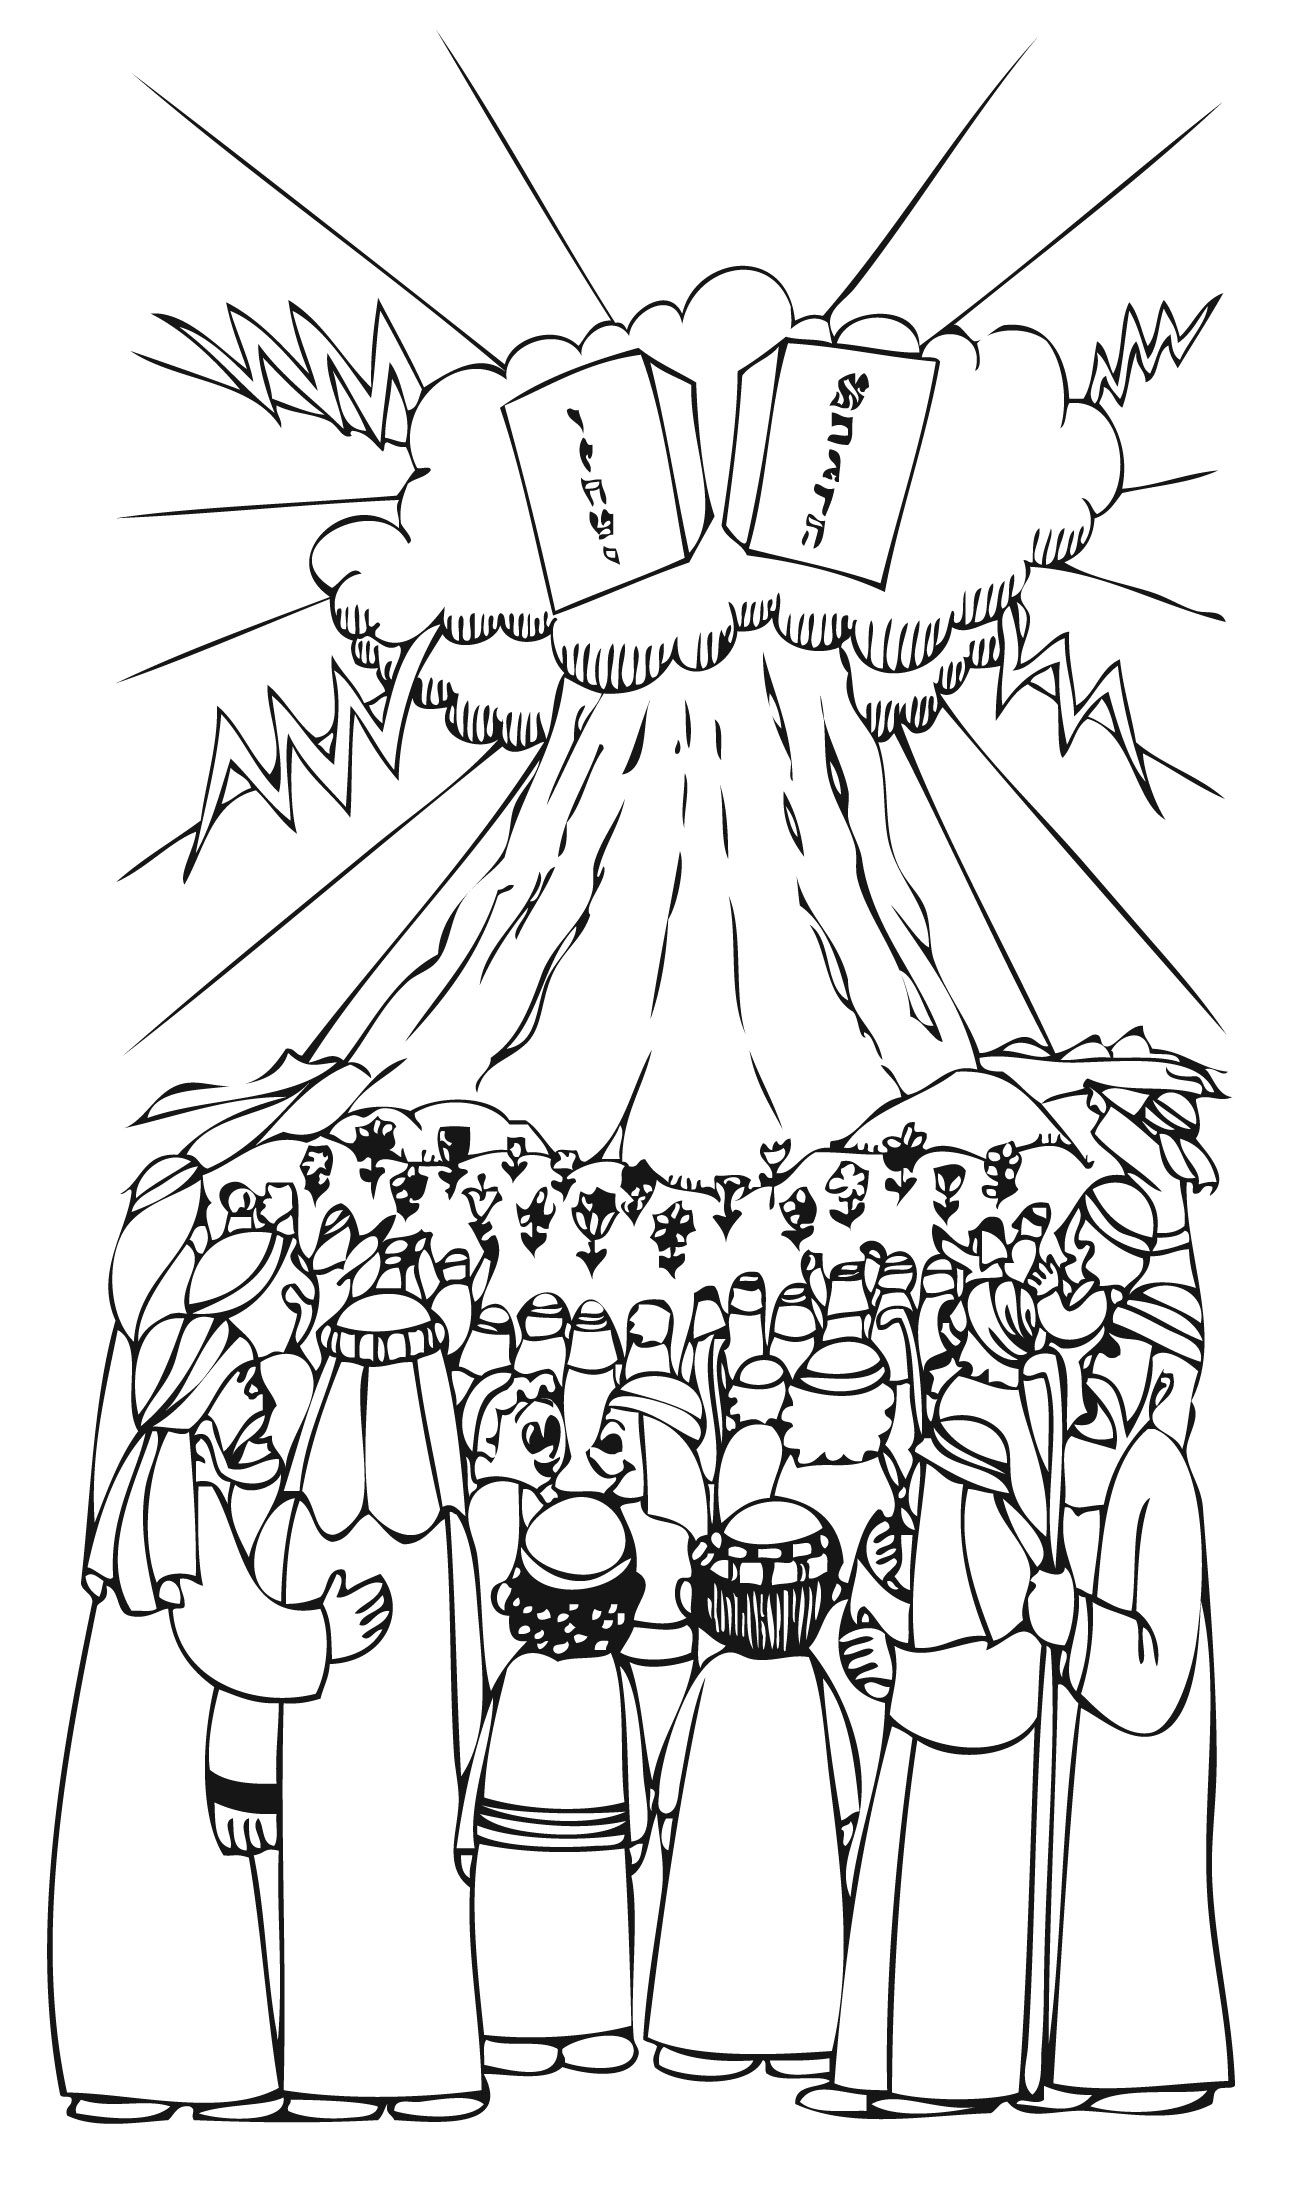 Coloring sheet. The Jews standing around Mount Sinai as they.